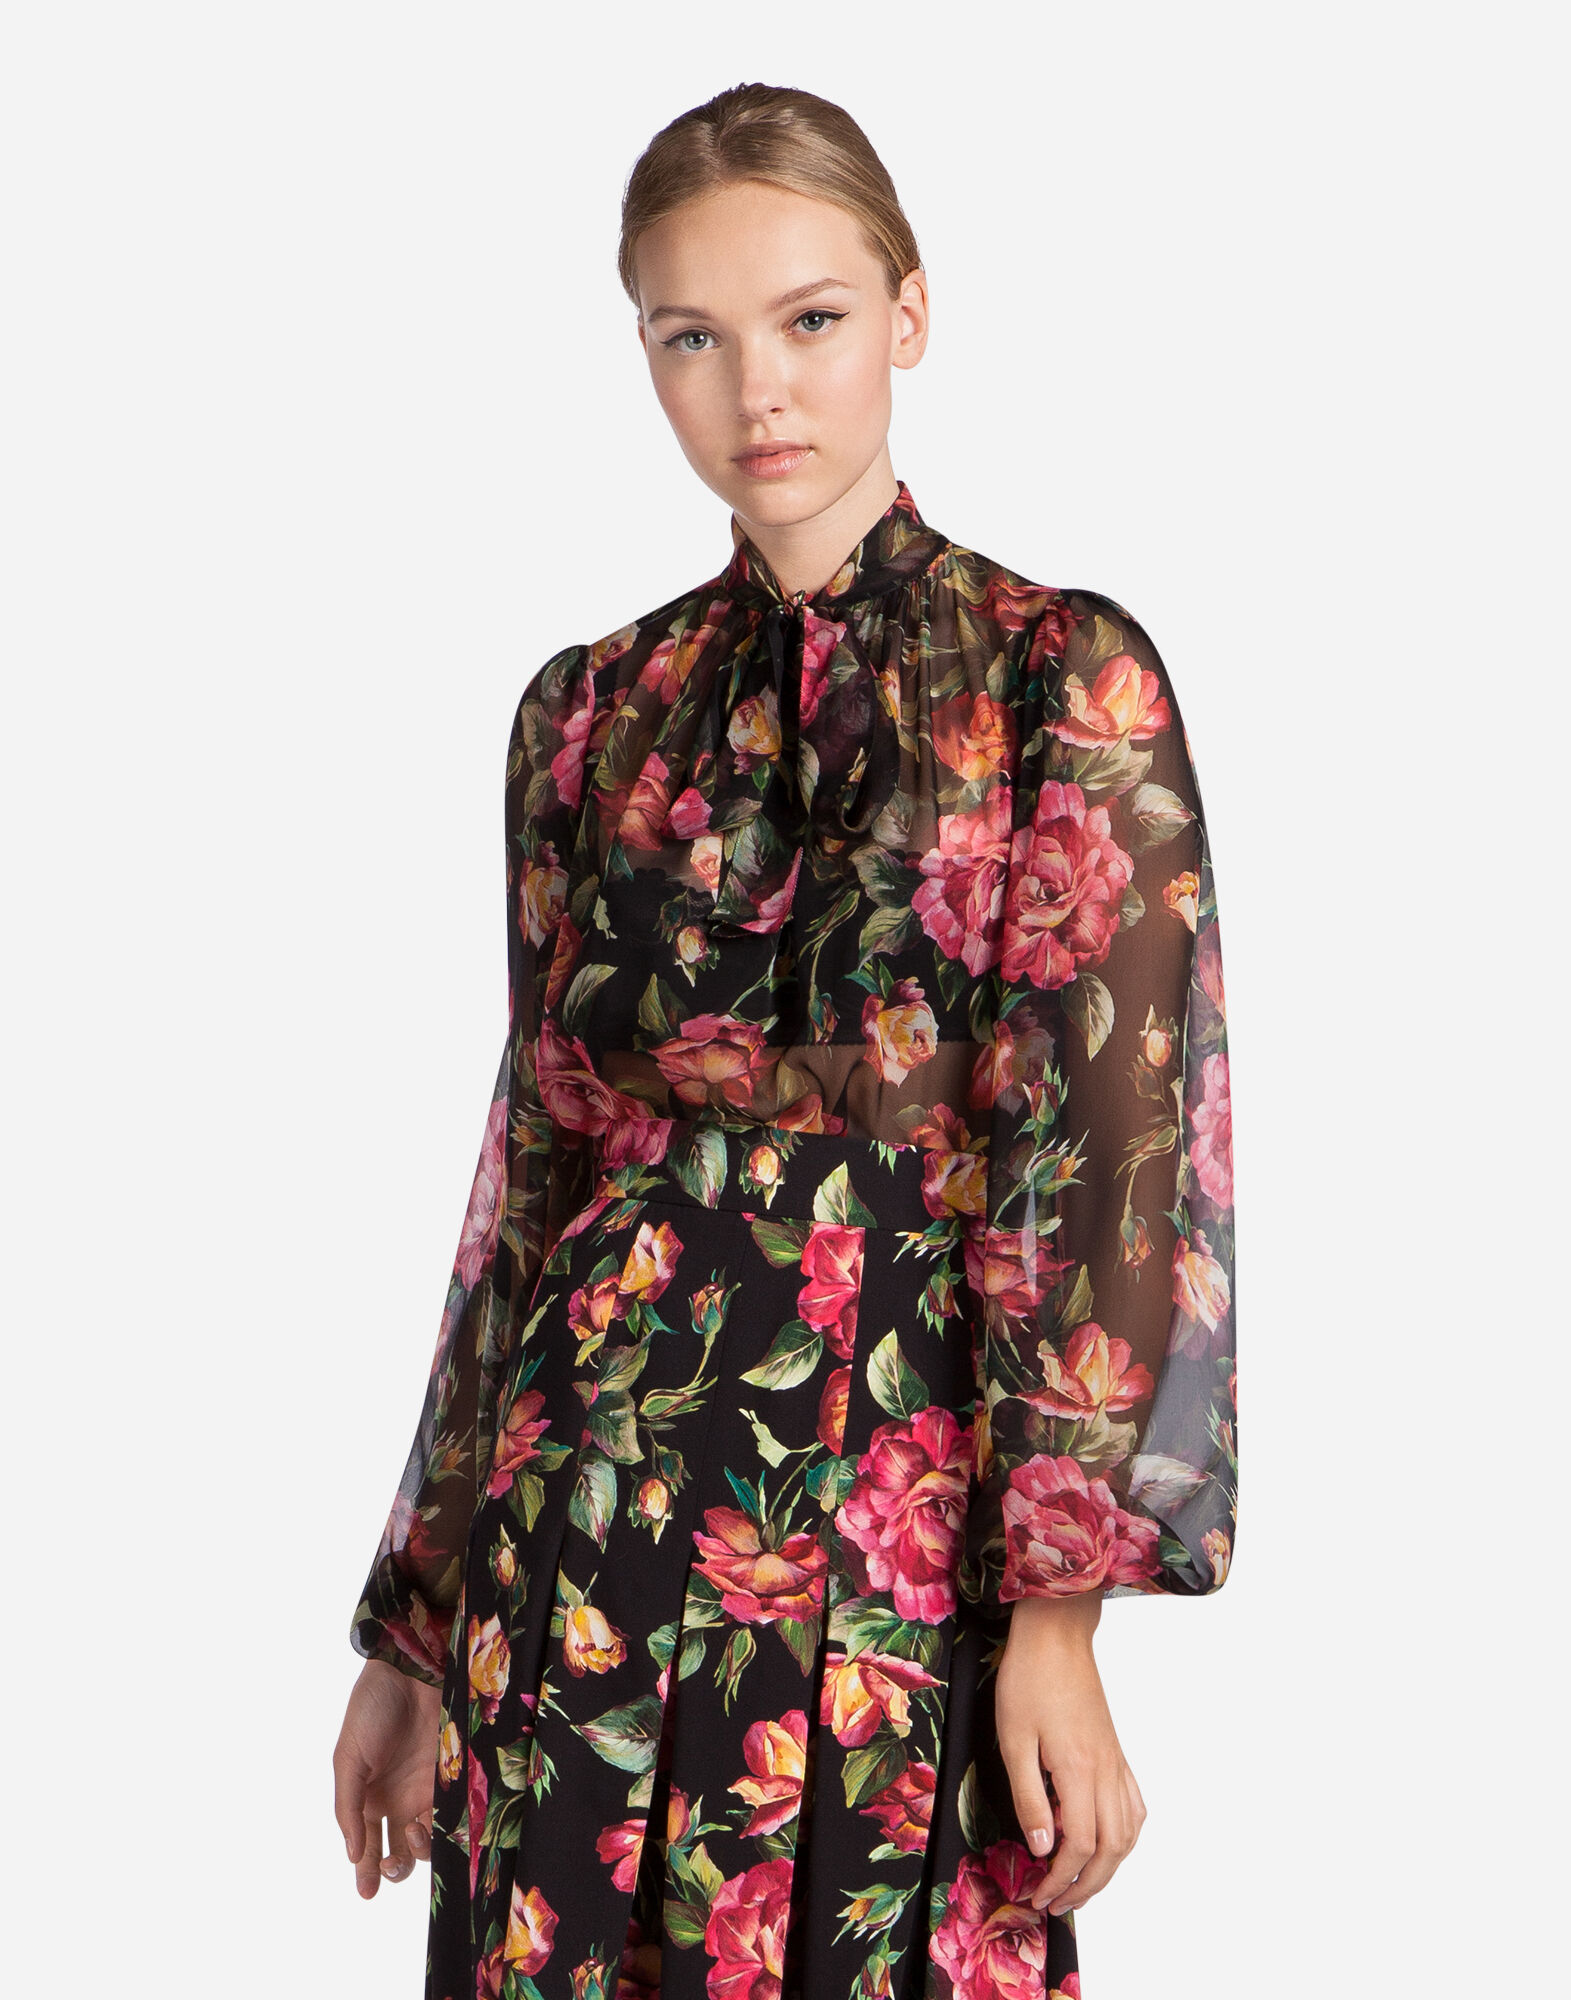 Women's Blouses and Tops - New Collection | Dolce&Gabbana ...